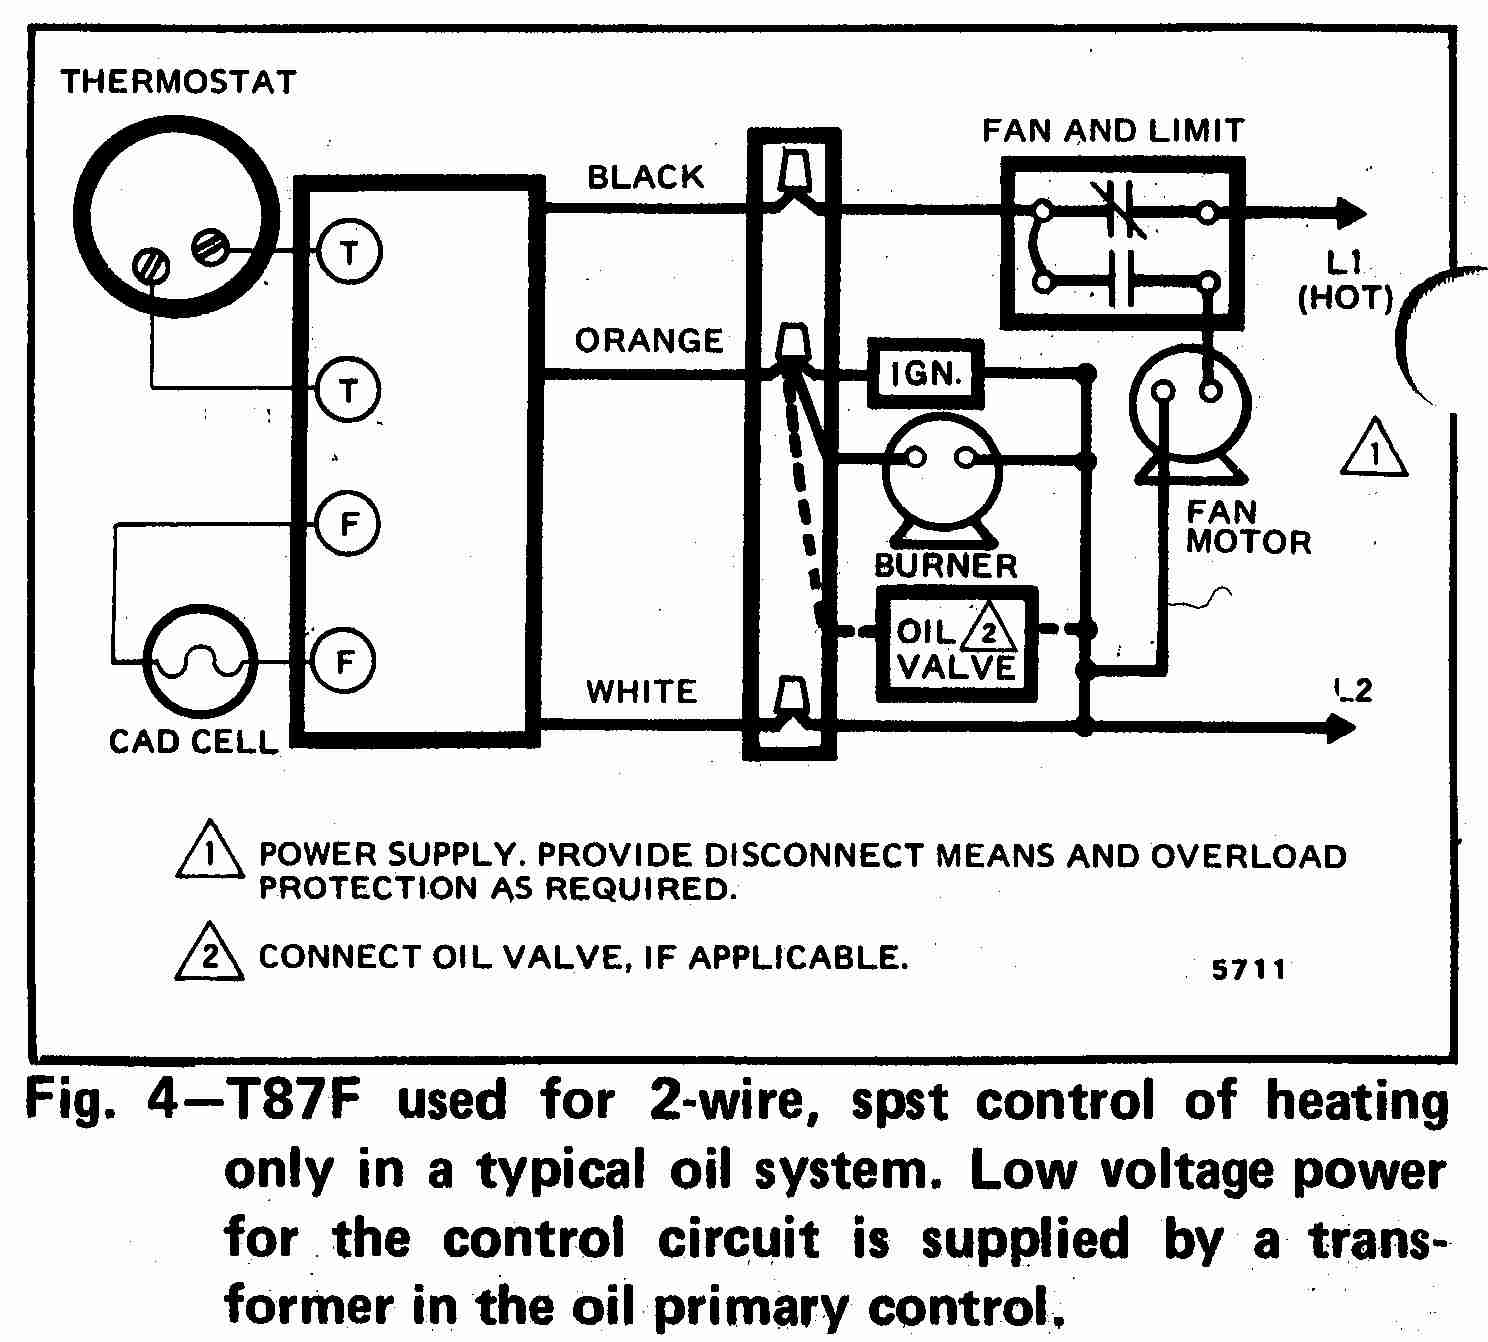 gas heater wiring diagram 3826b old gas furnace wiring diagram digital resources  3826b old gas furnace wiring diagram